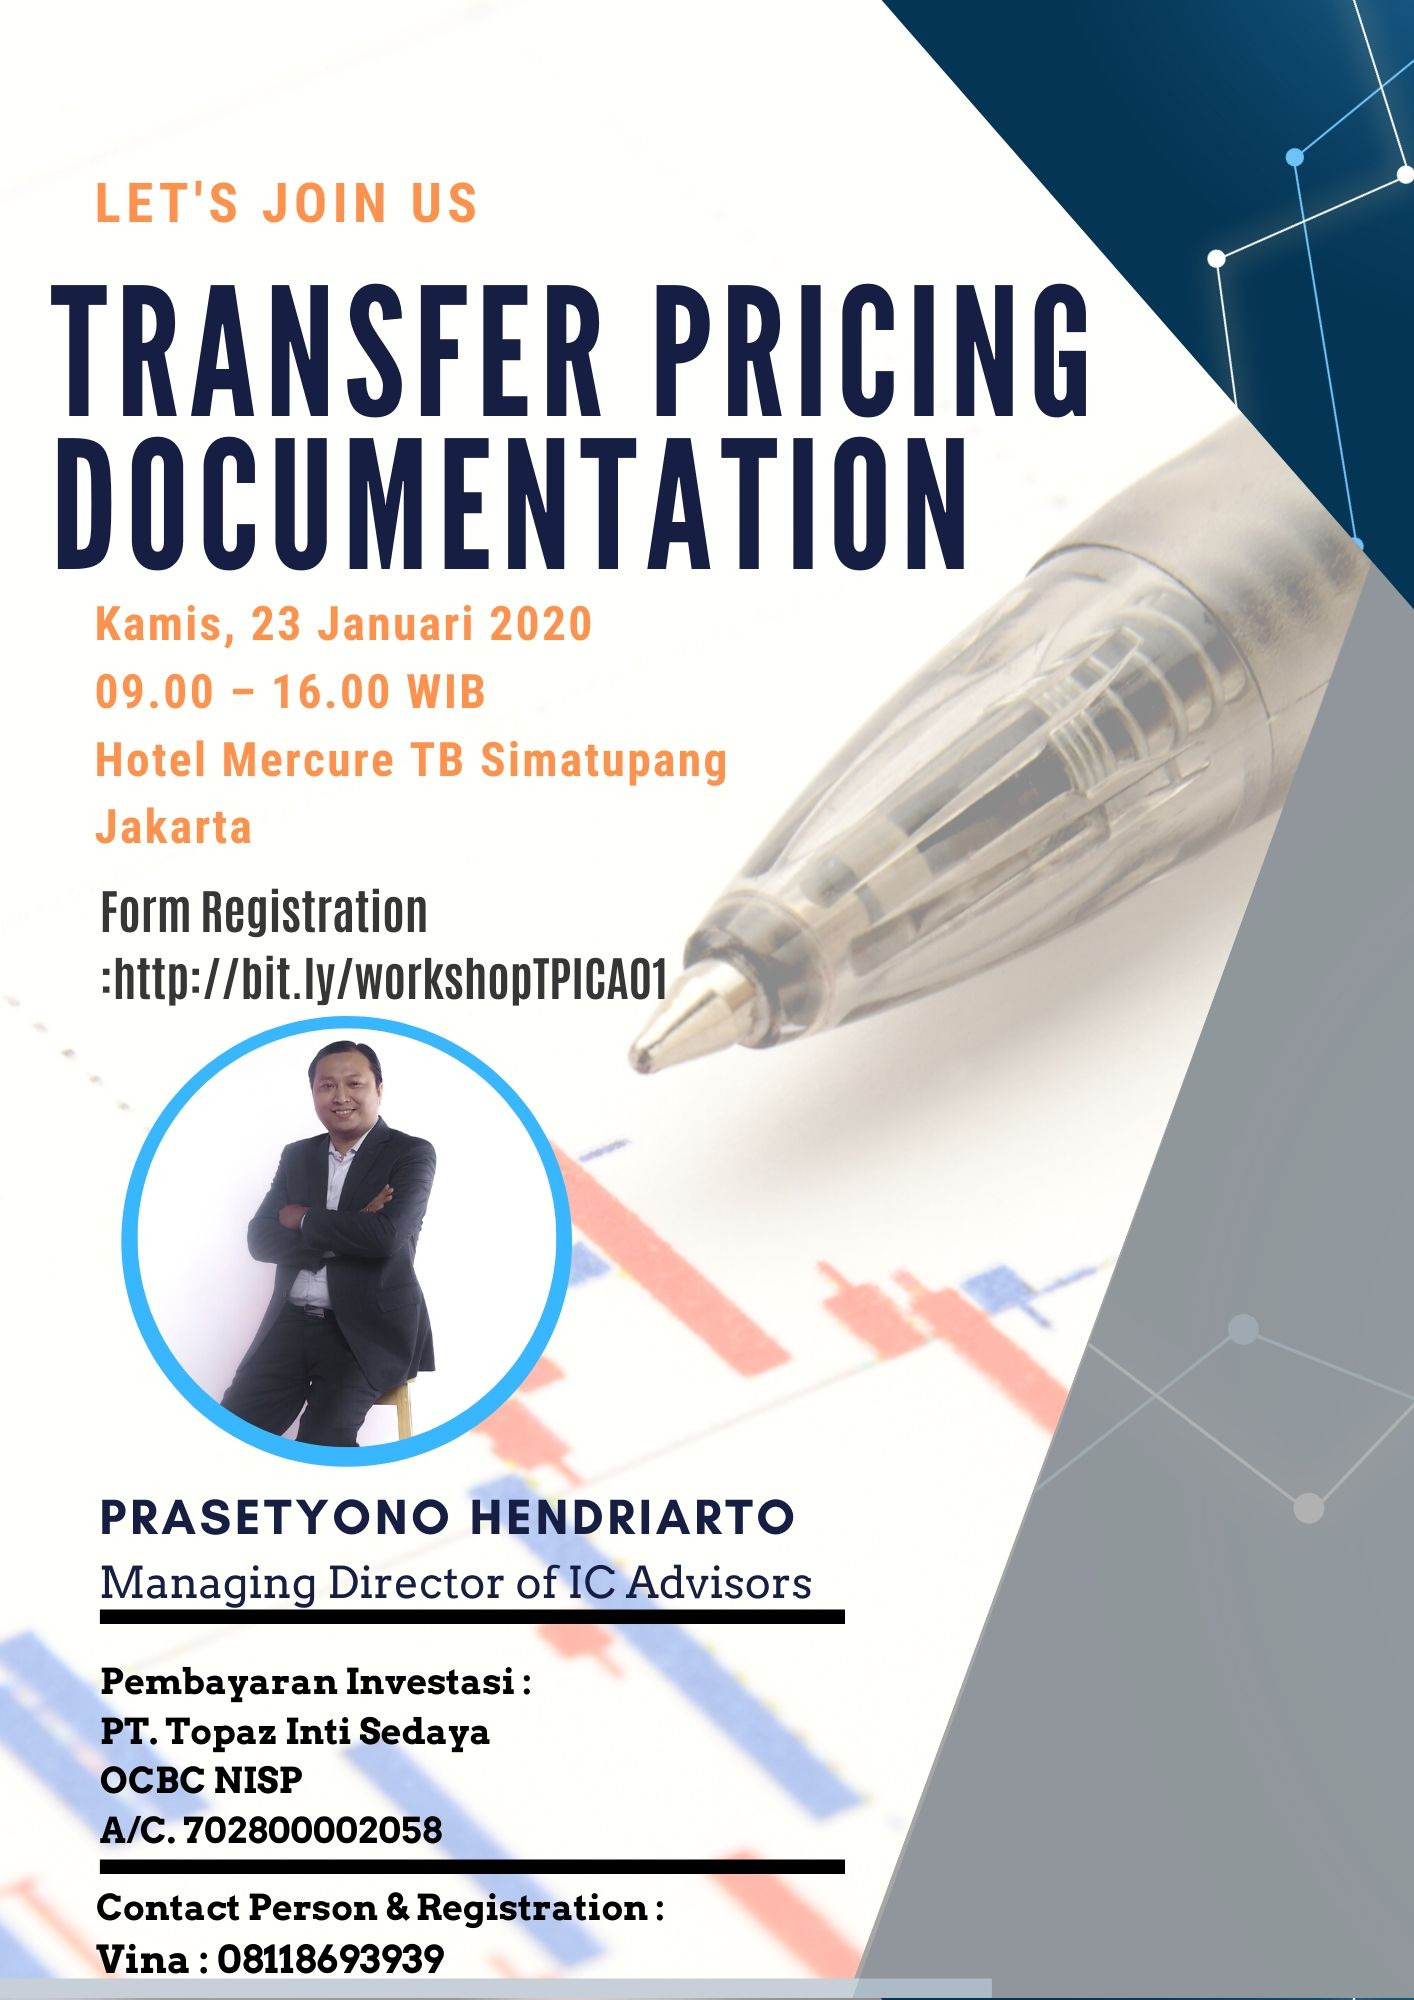 SEMINAR TRANSFER PRICING